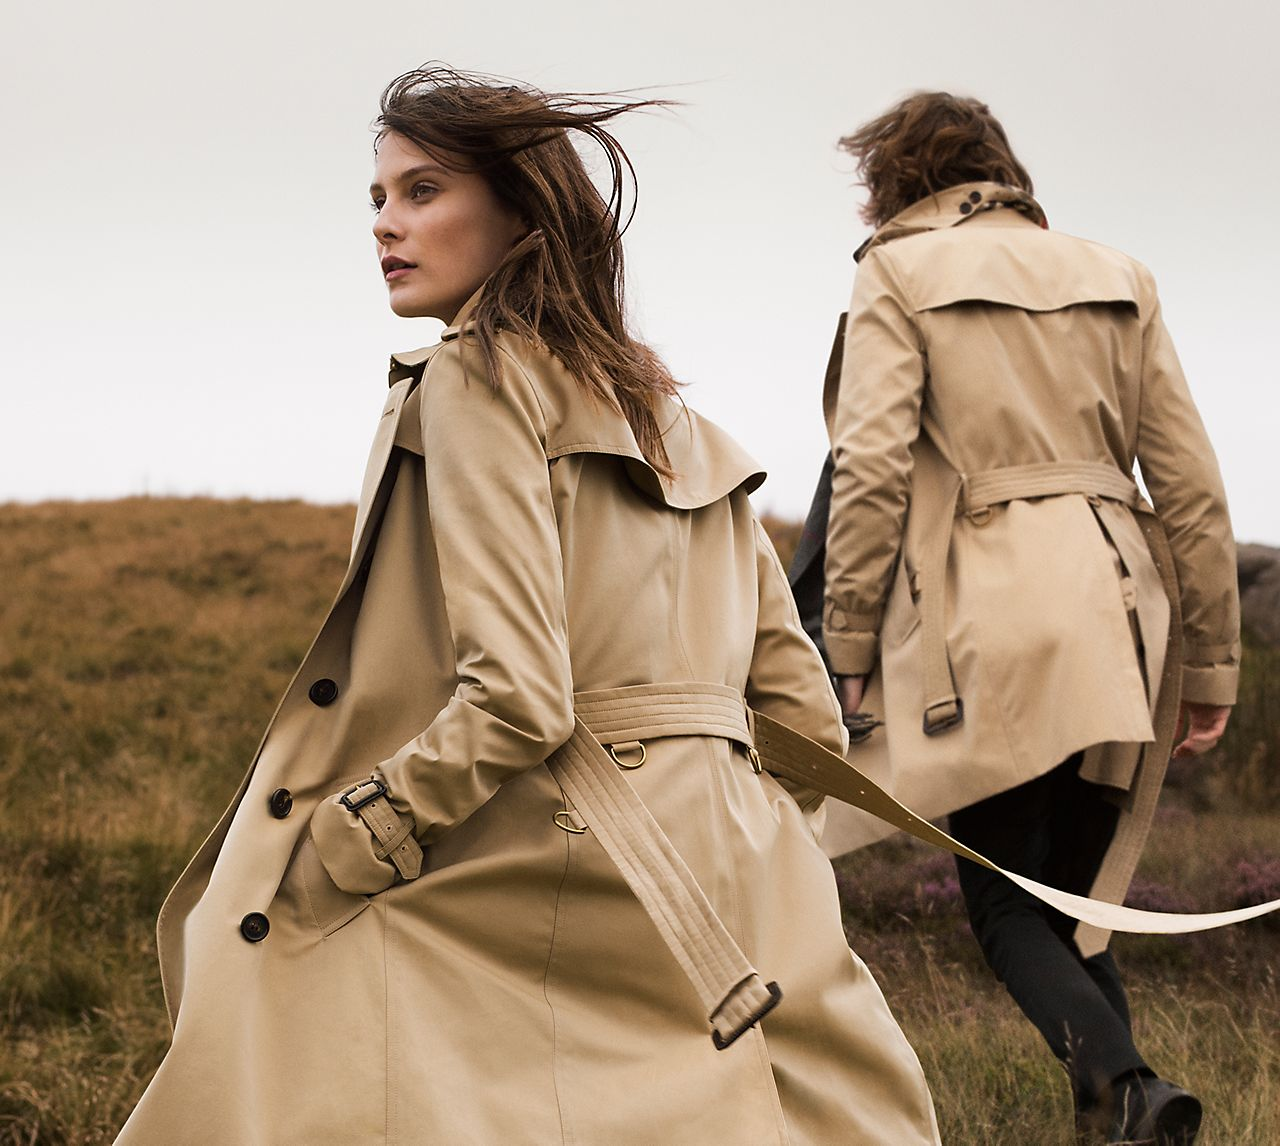 The Heritage Trench Coat Now available to monogram